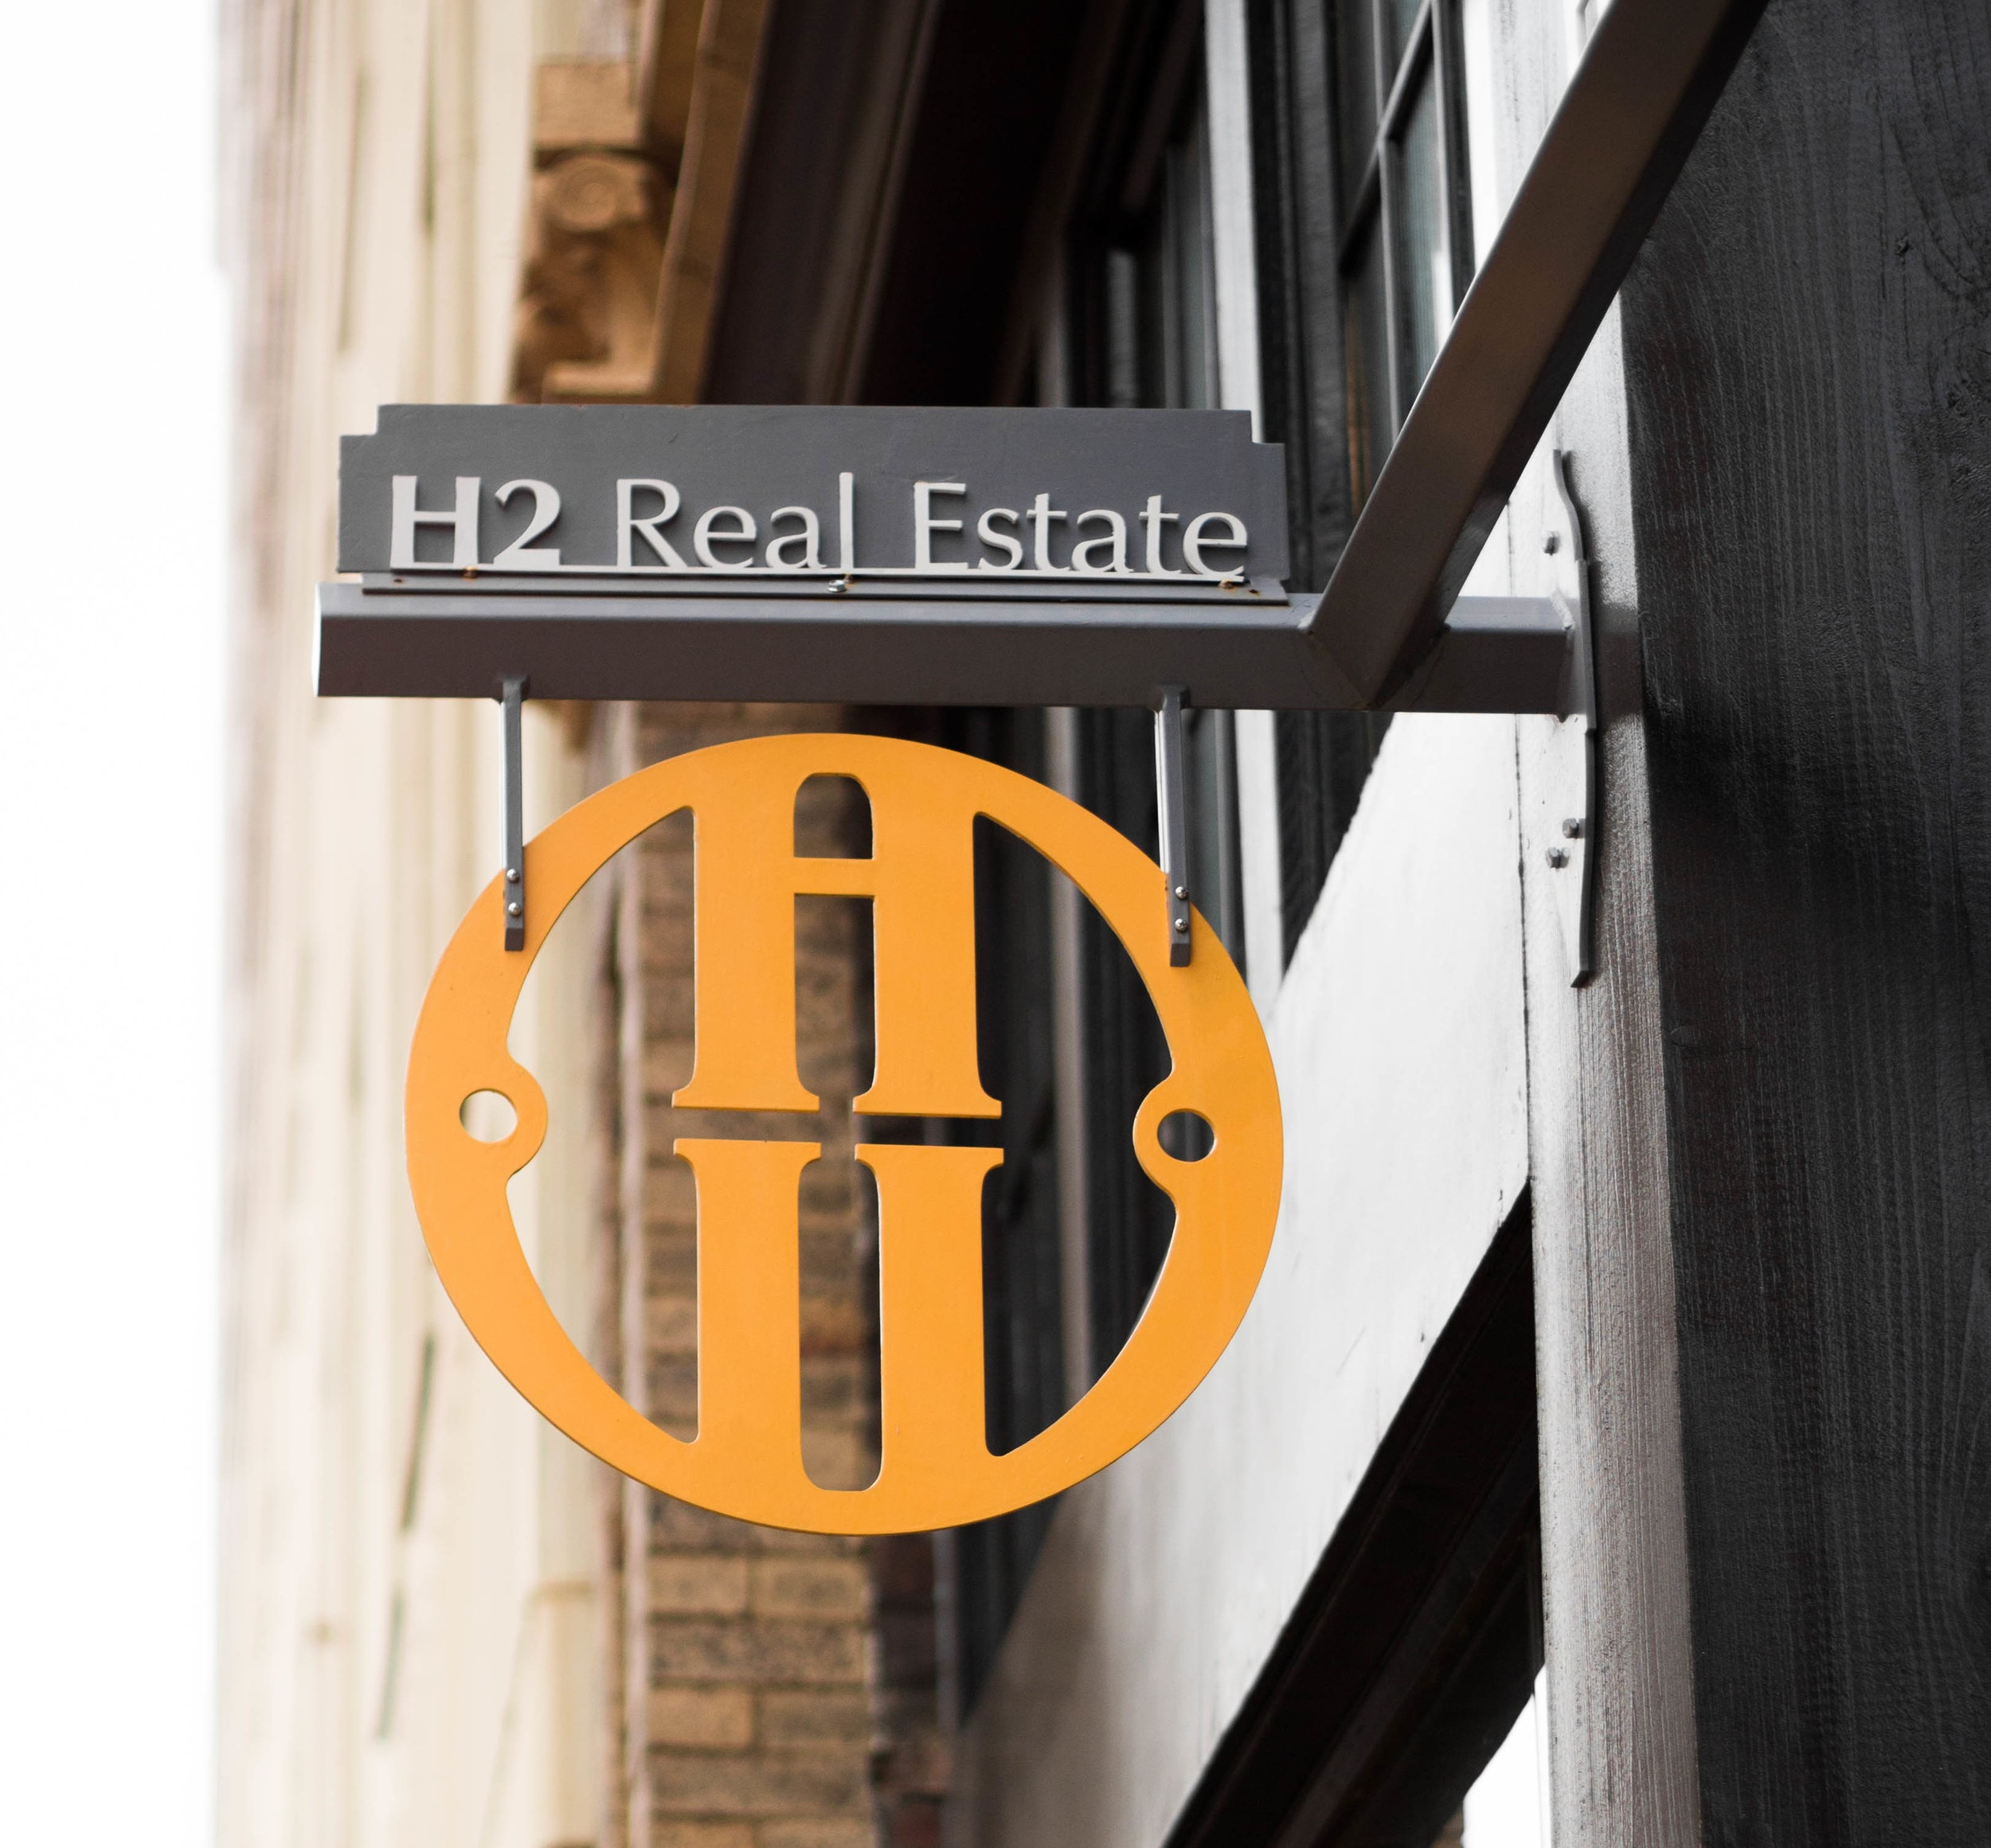 H2 REAL ESTATE SIGN FABRICATION